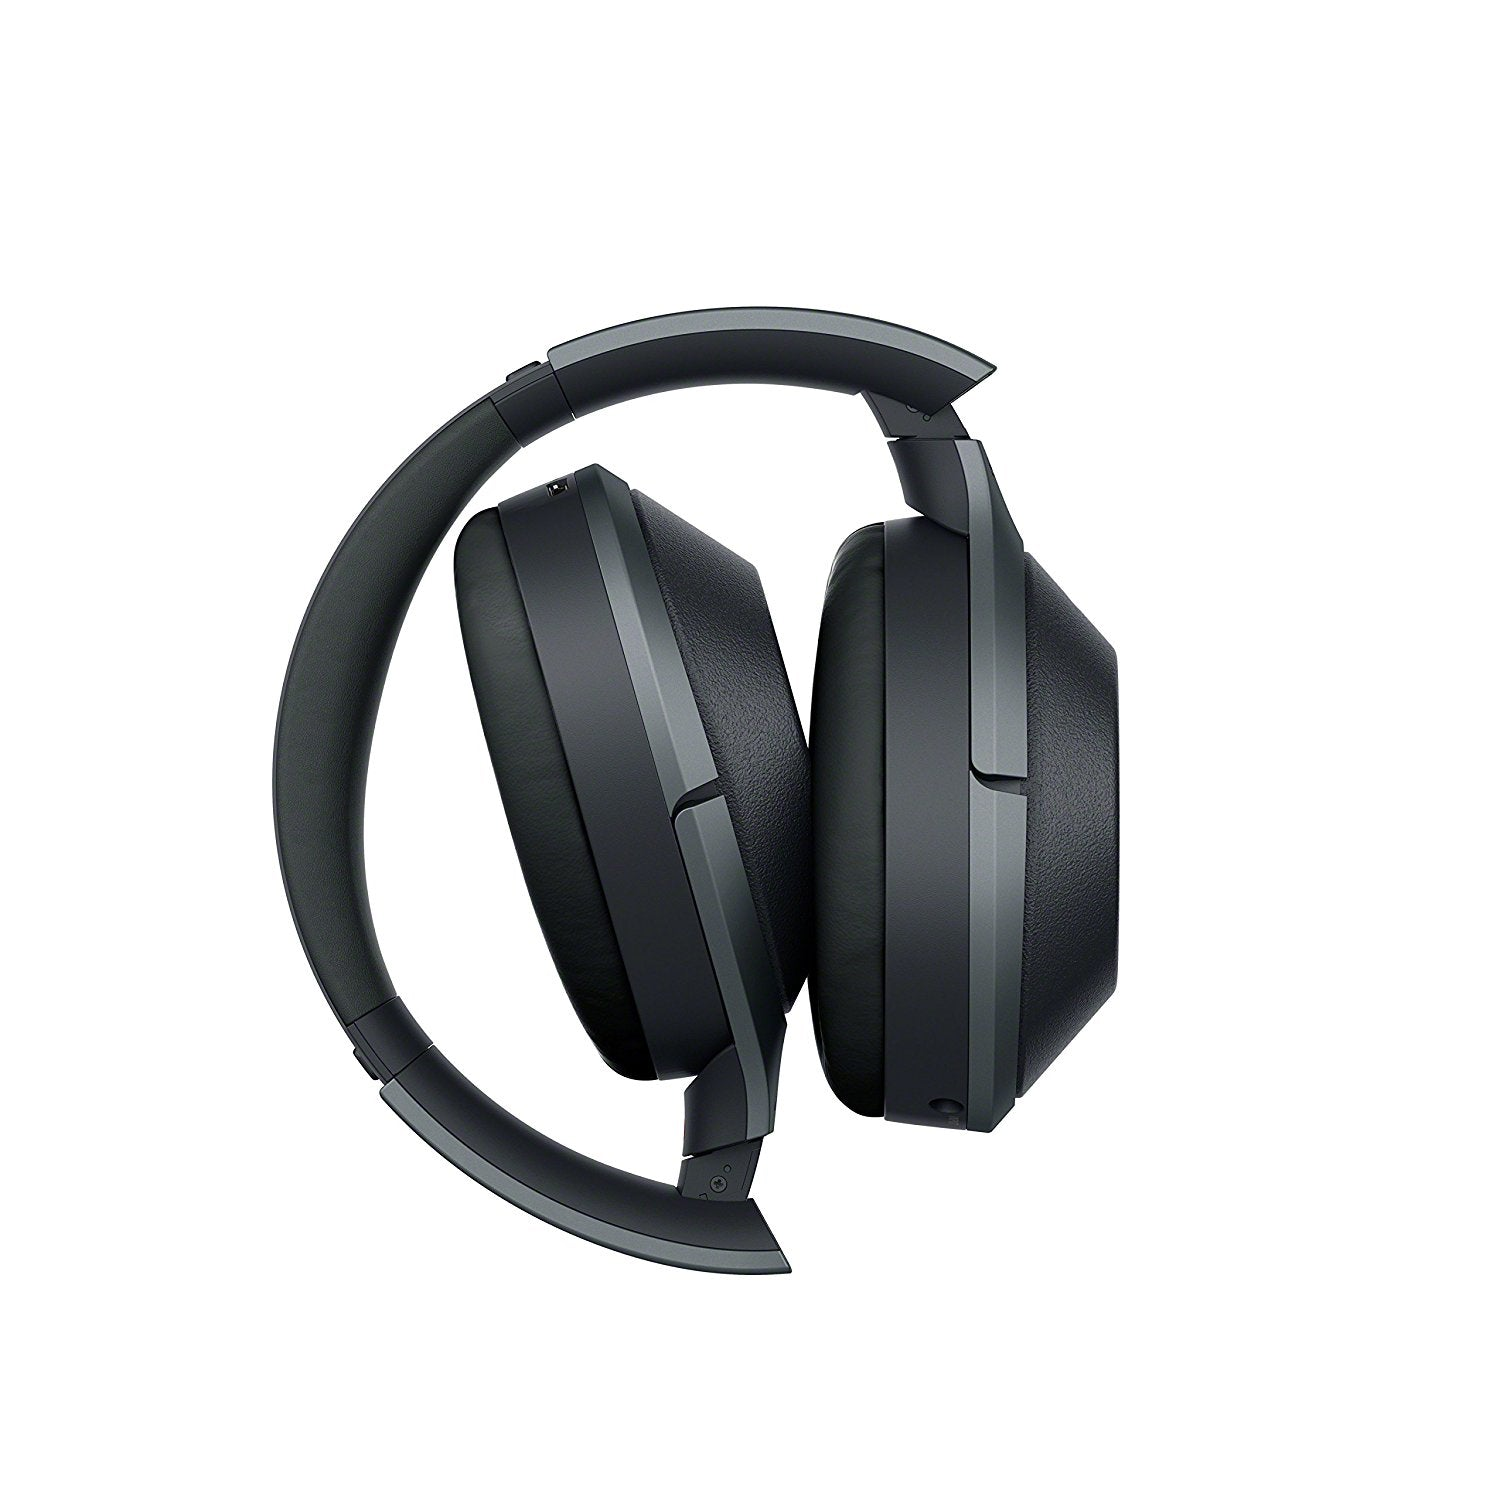 Sony Noise Cancelling Headphones Wh1000xm2 Over Ear Wireless Bluetoot The Mac Stop